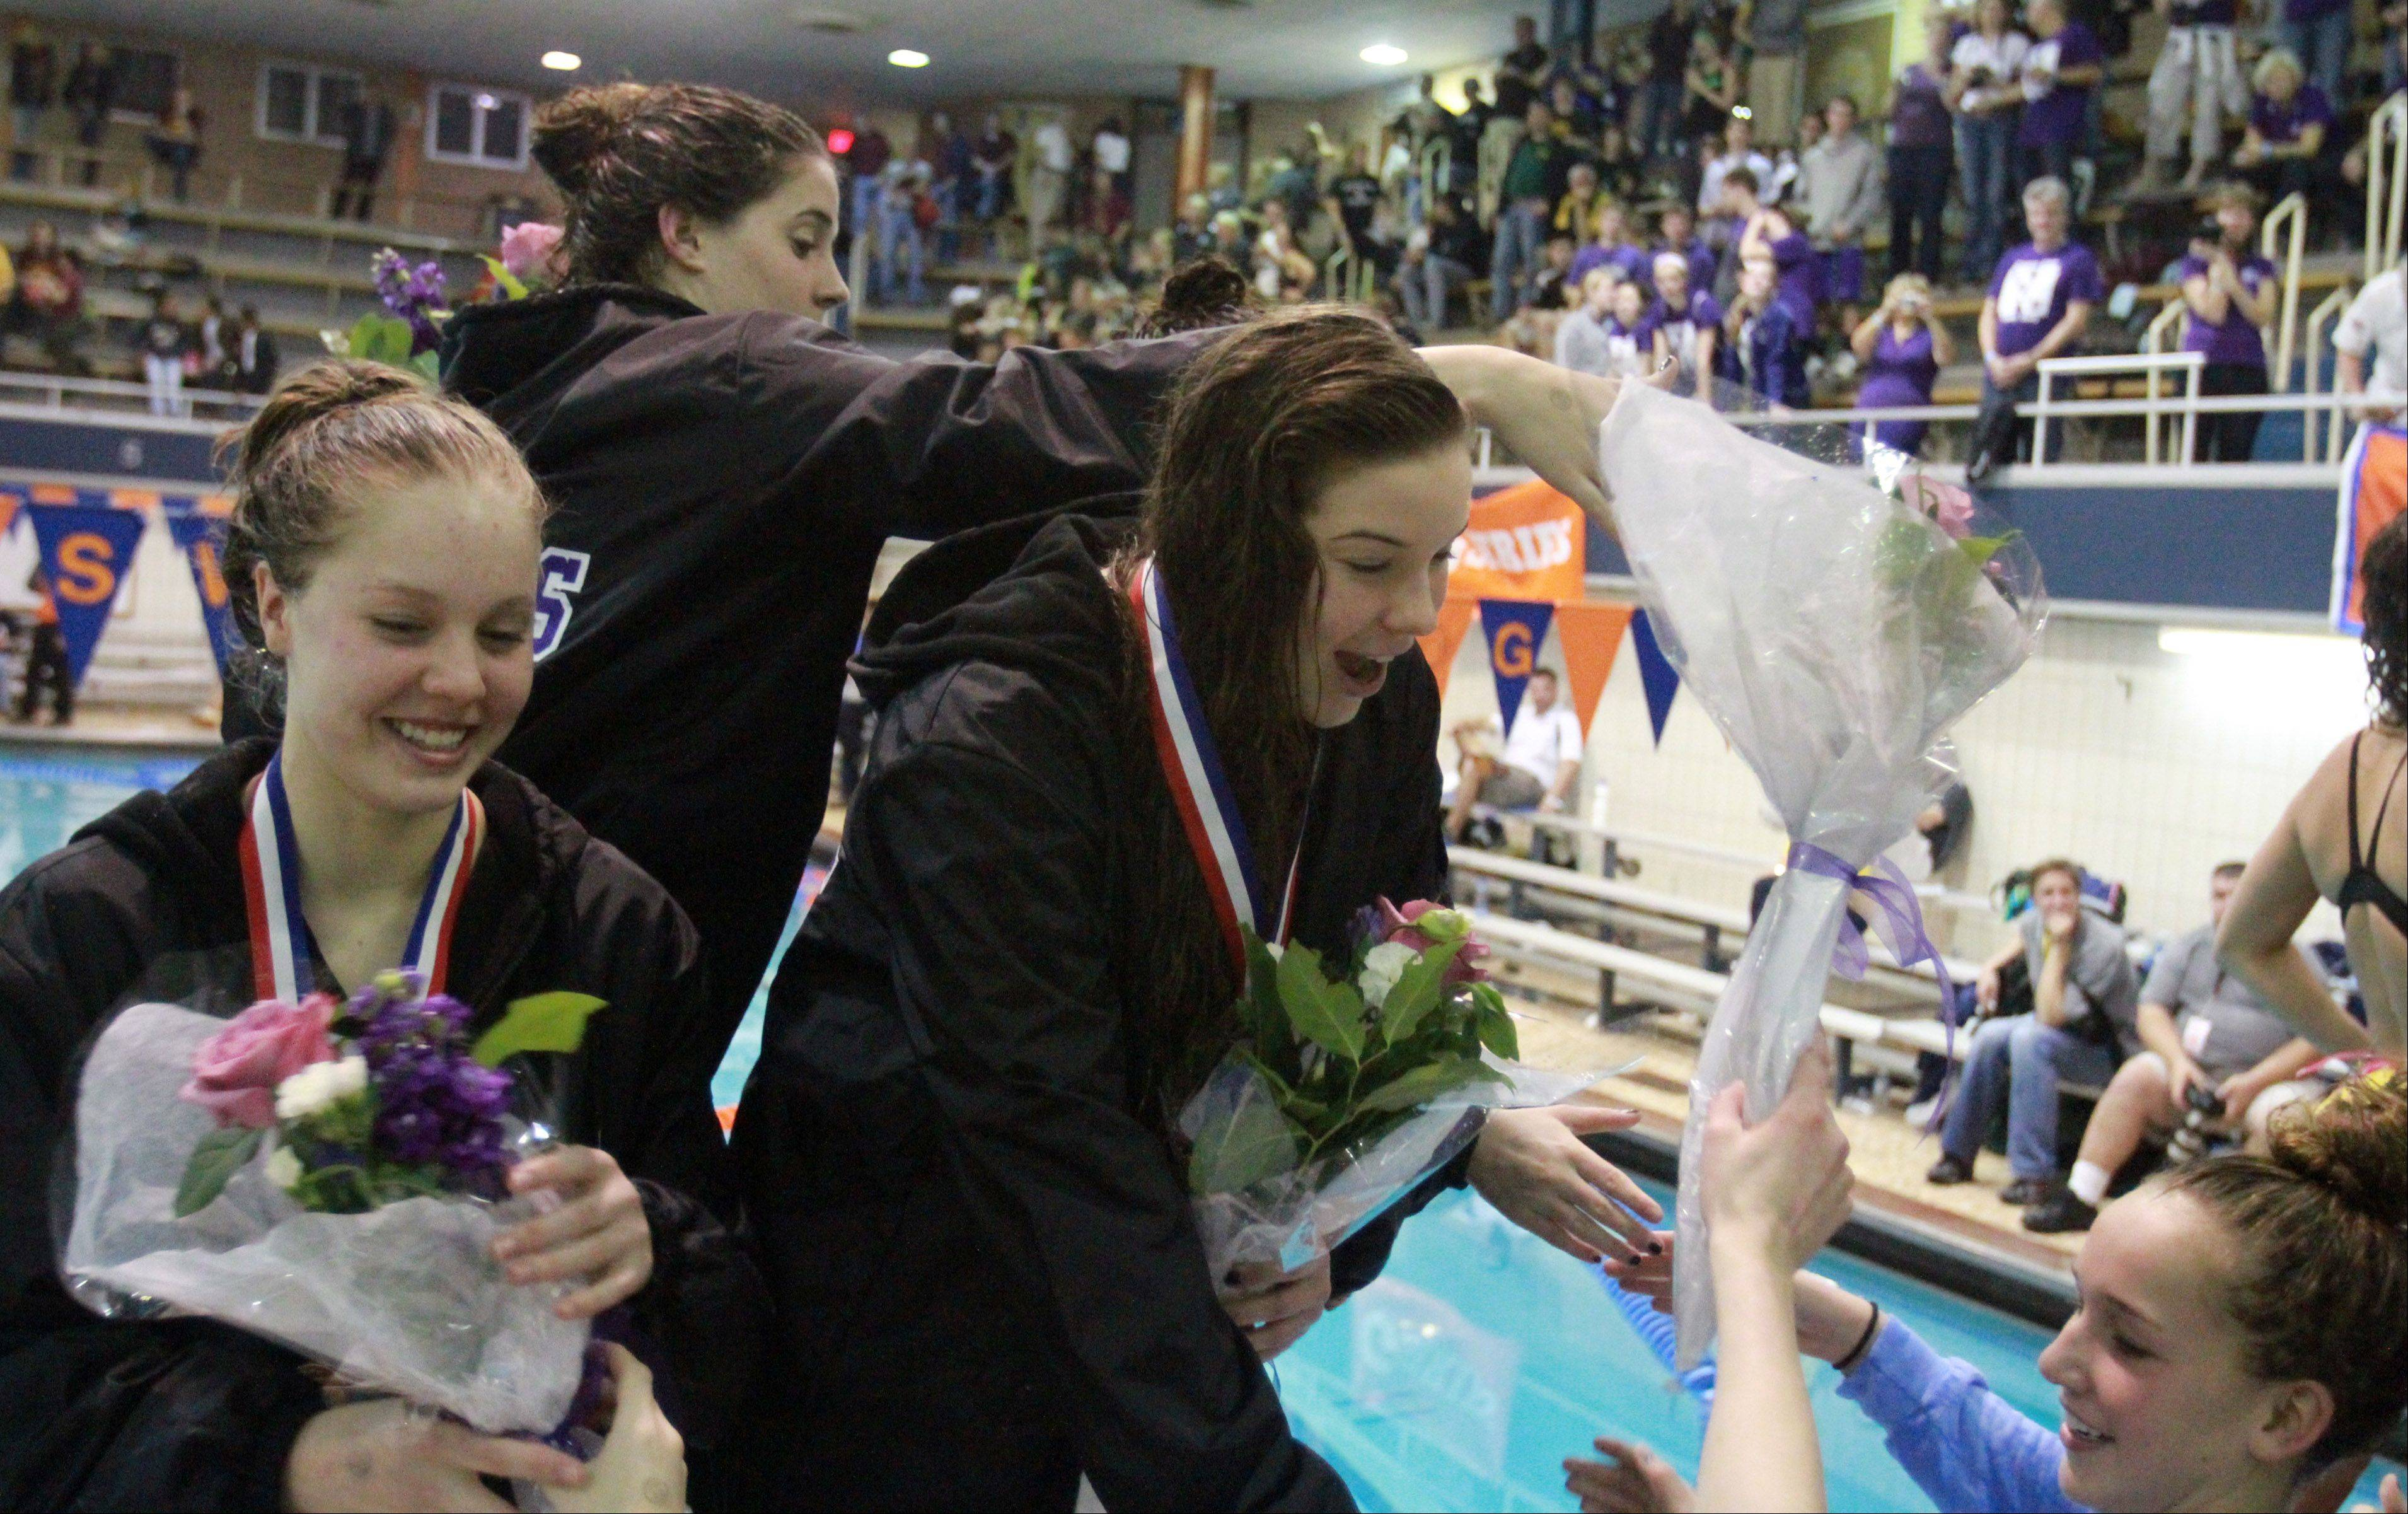 Downers Grove's Maddy Sims, Emily Albrecht, Hannah Kaufmann, and Gabby Sims placed fourth in the 400-yard freestyle relay at the IHSA state championships in Evanston on Saturday.